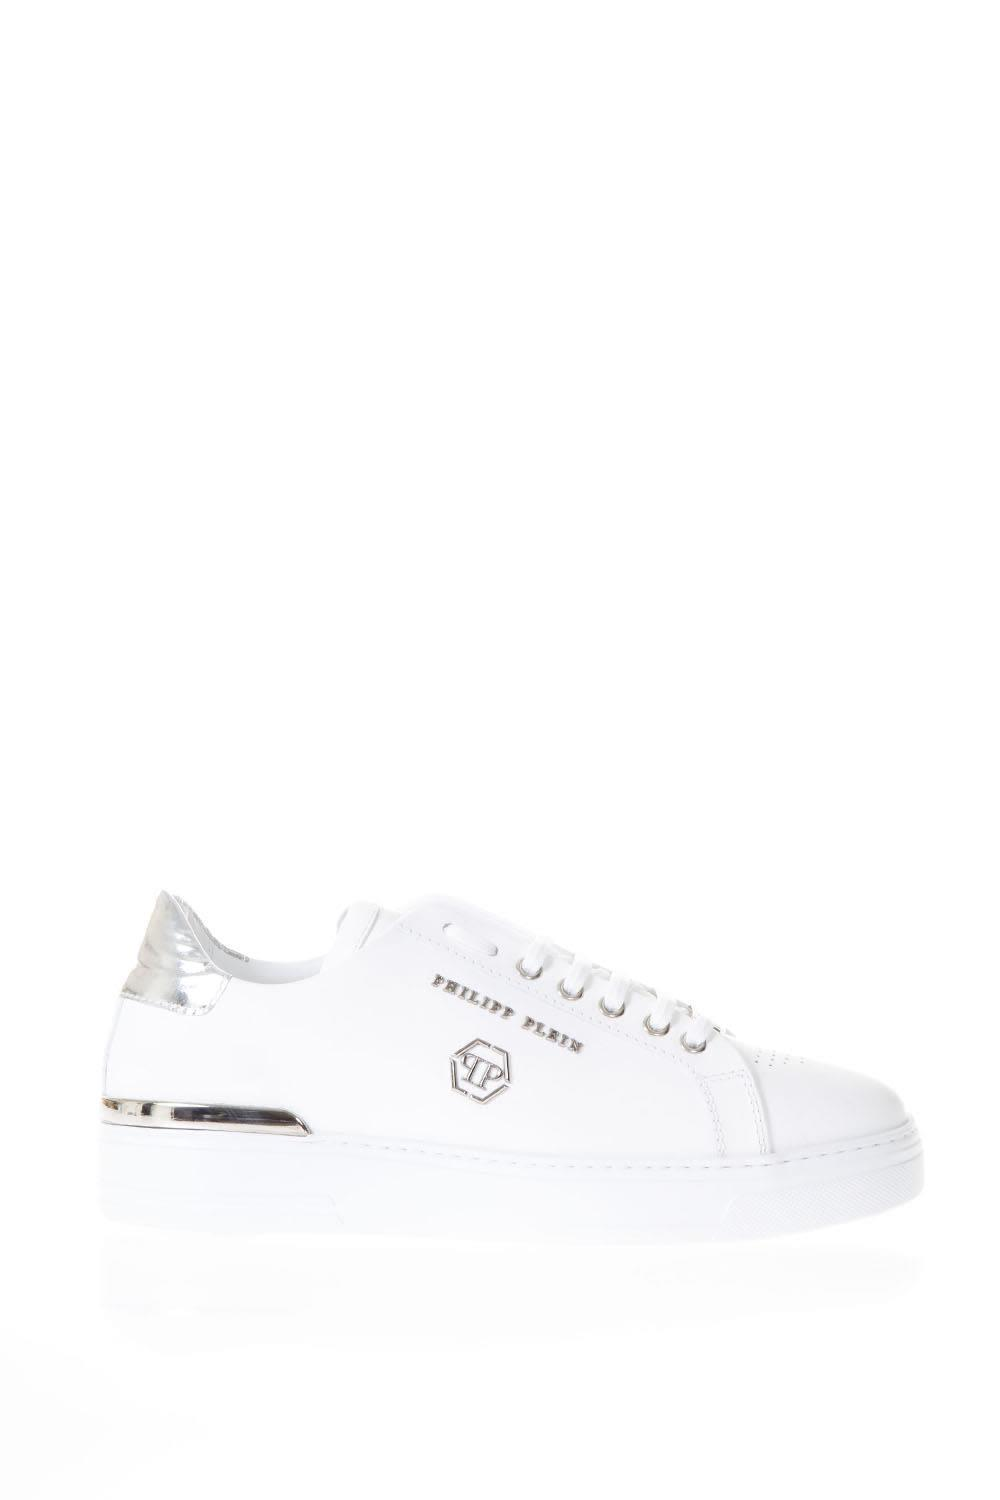 Philipp Plein White Leather Sneakers With Pp Logo